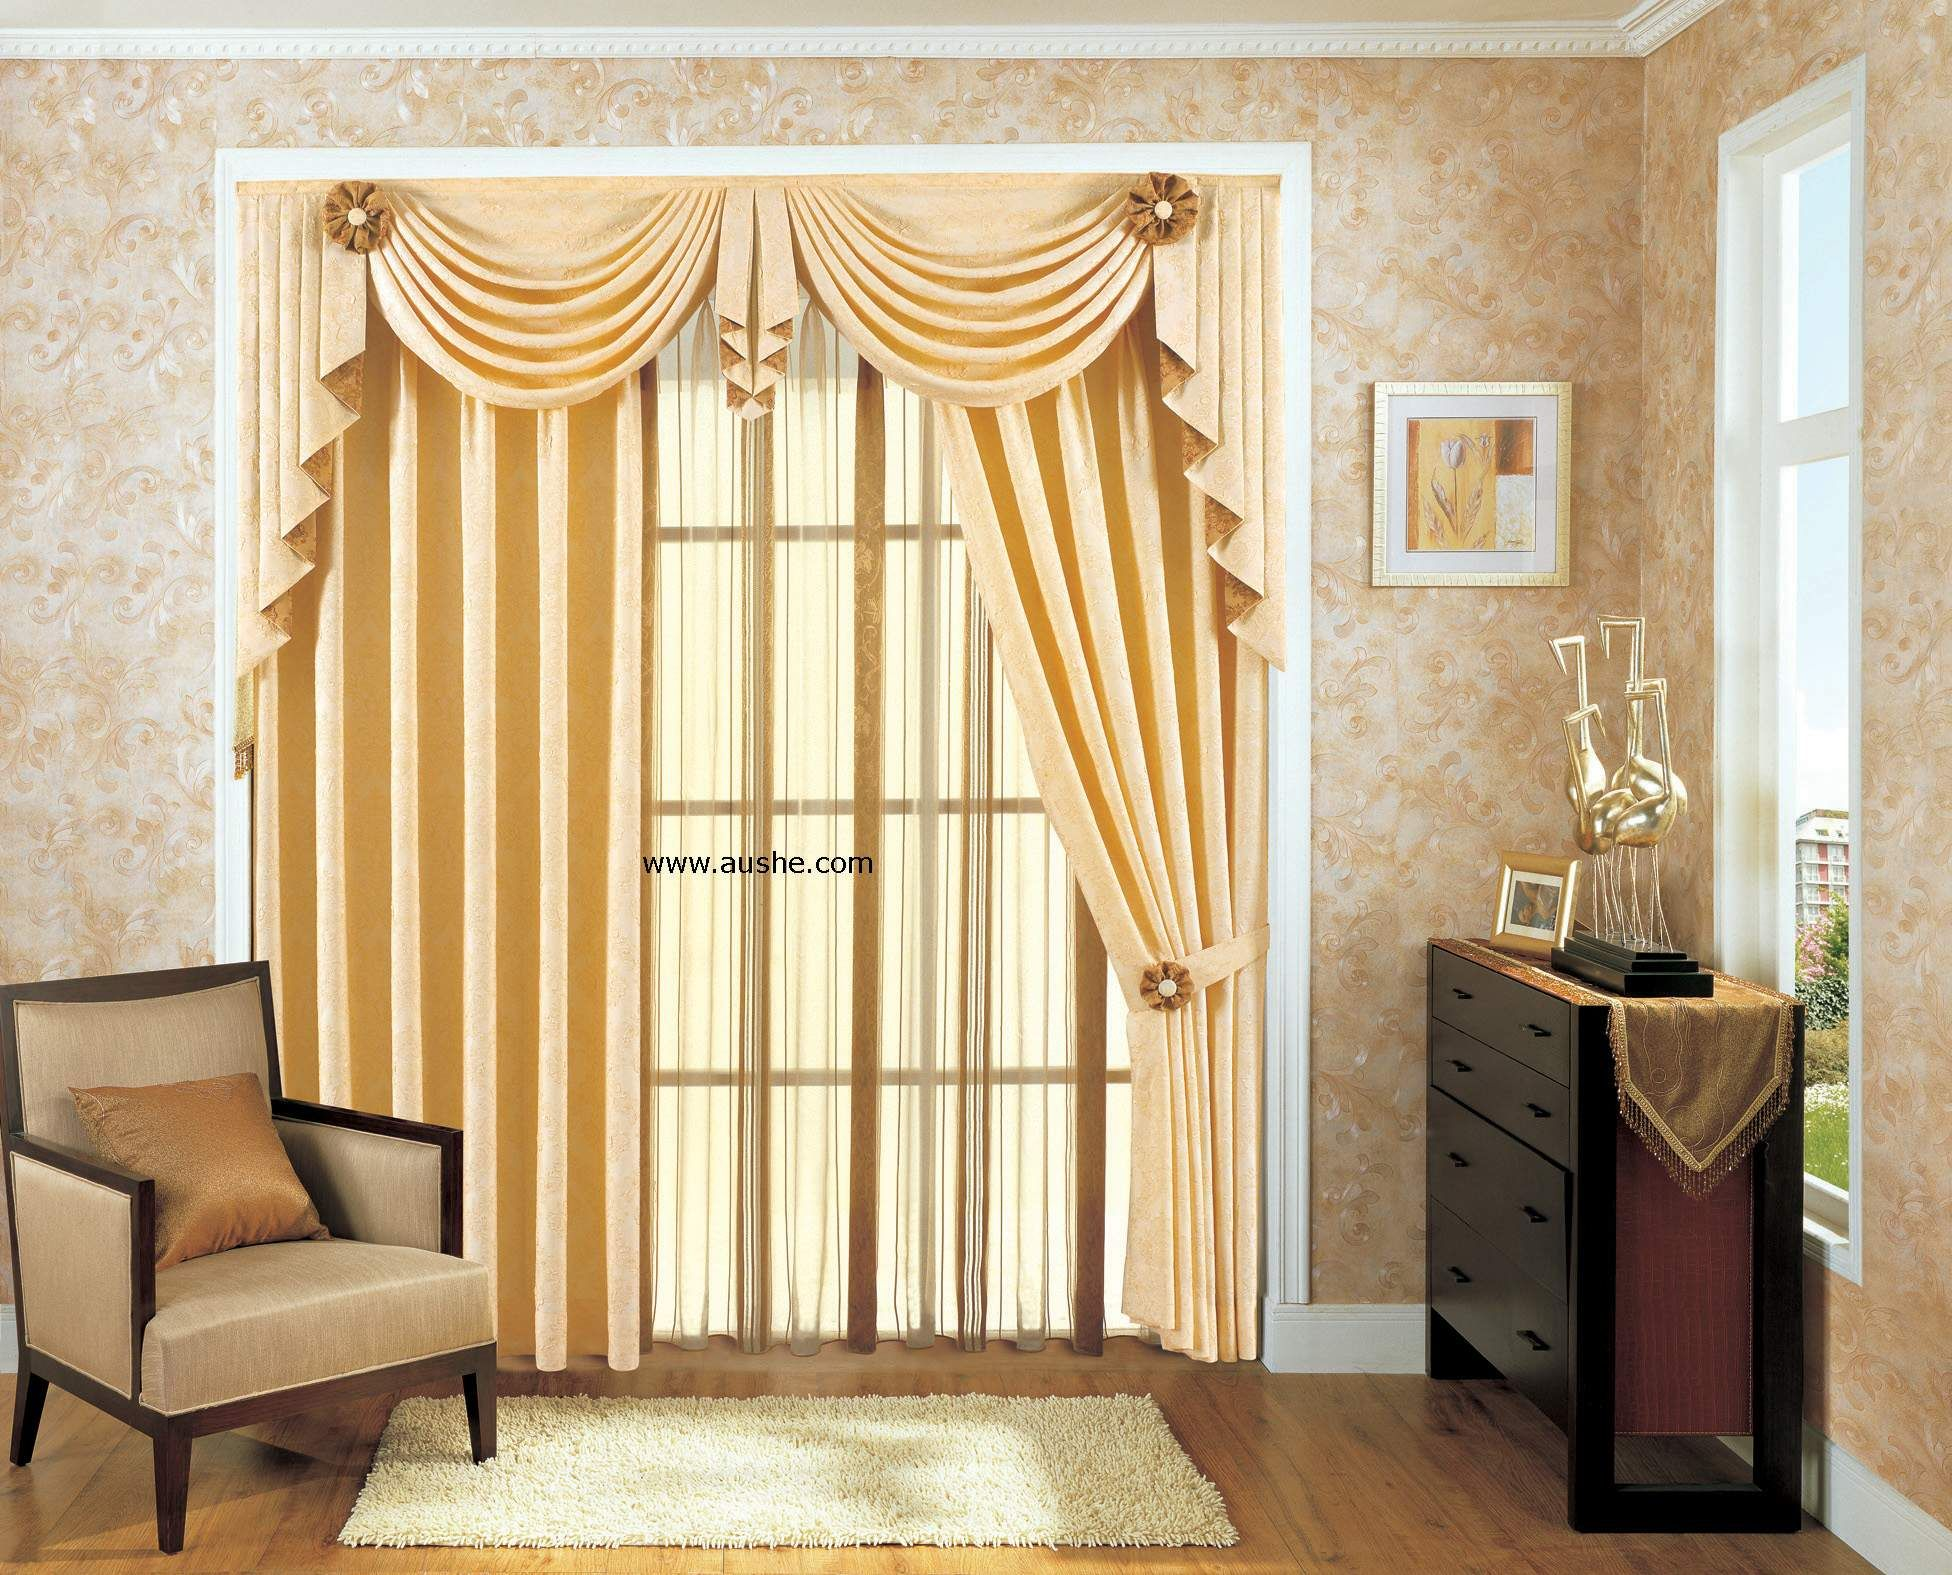 Interior elegant curtains for living room offers magnetizing wonderful window treatments - Living room with curtains ...